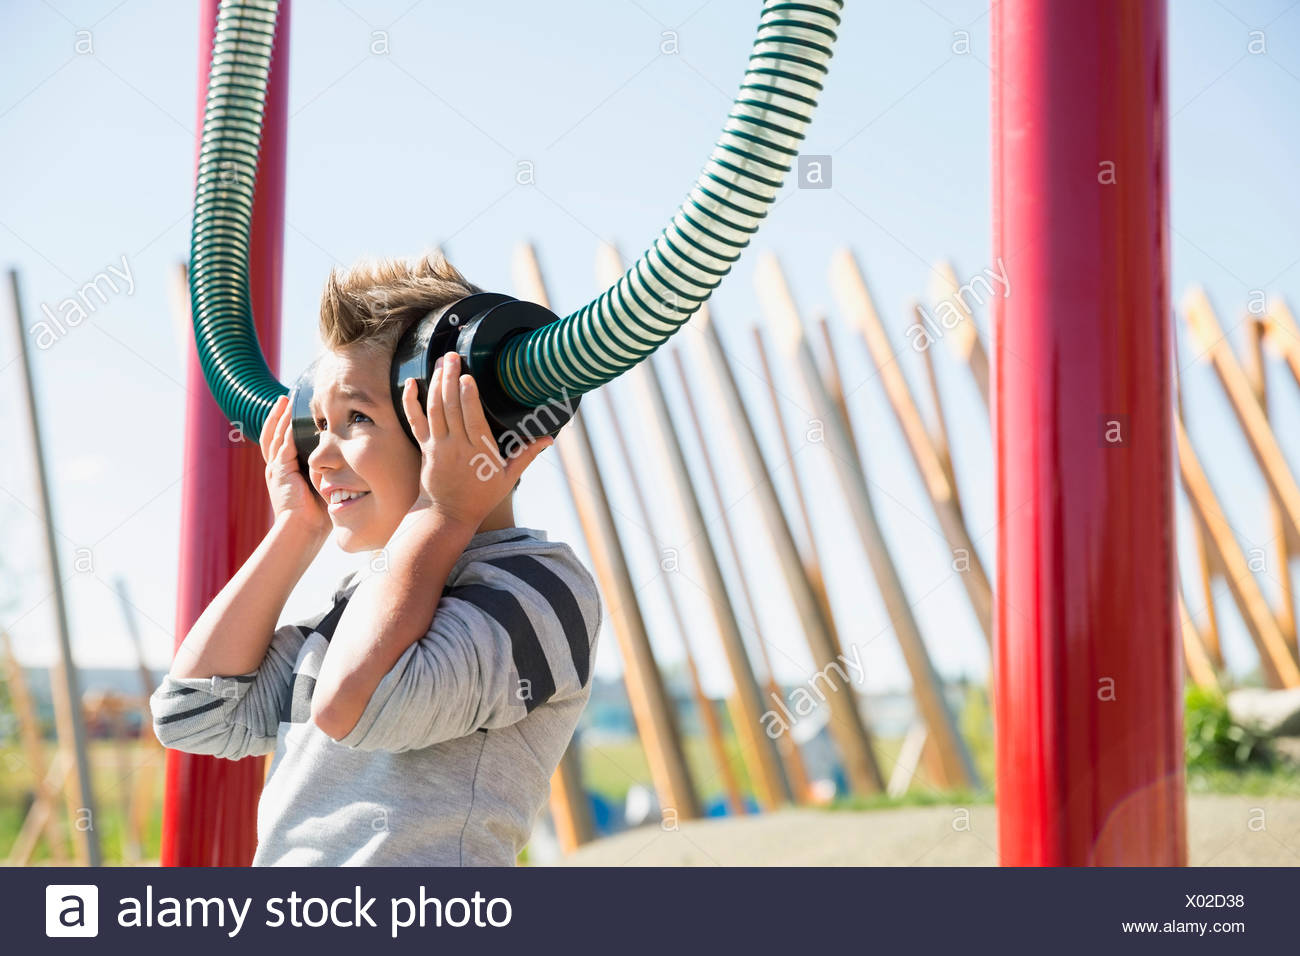 Boy playing listening to tubes in sunny playground - Stock Image